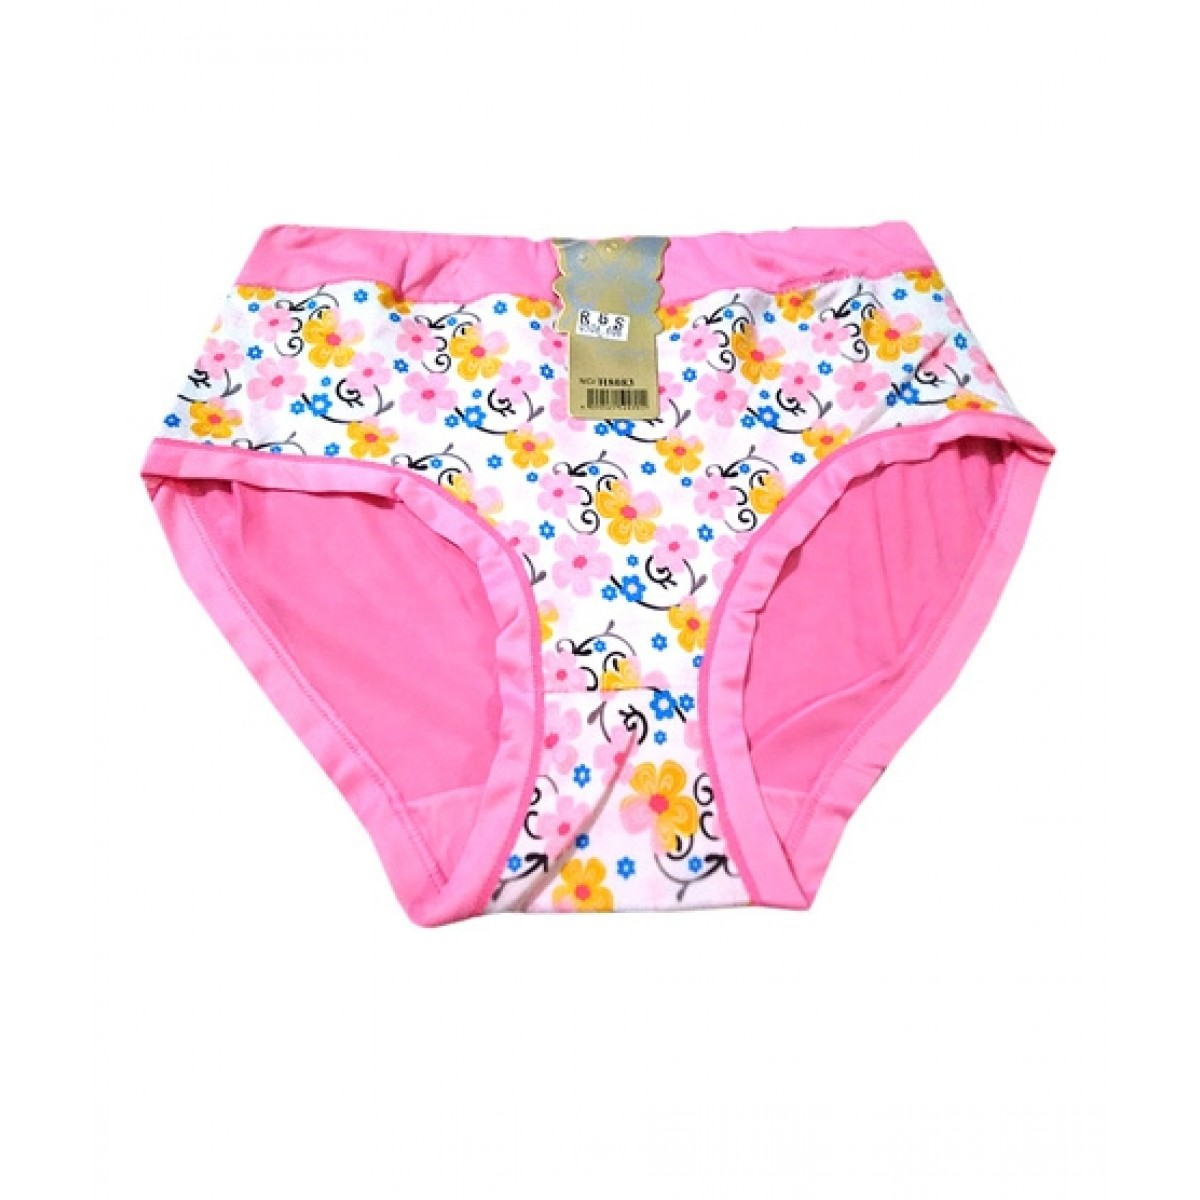 bba14cd684 AS Collection Fancy Stretchable Panty For Women Price in Pakistan ...